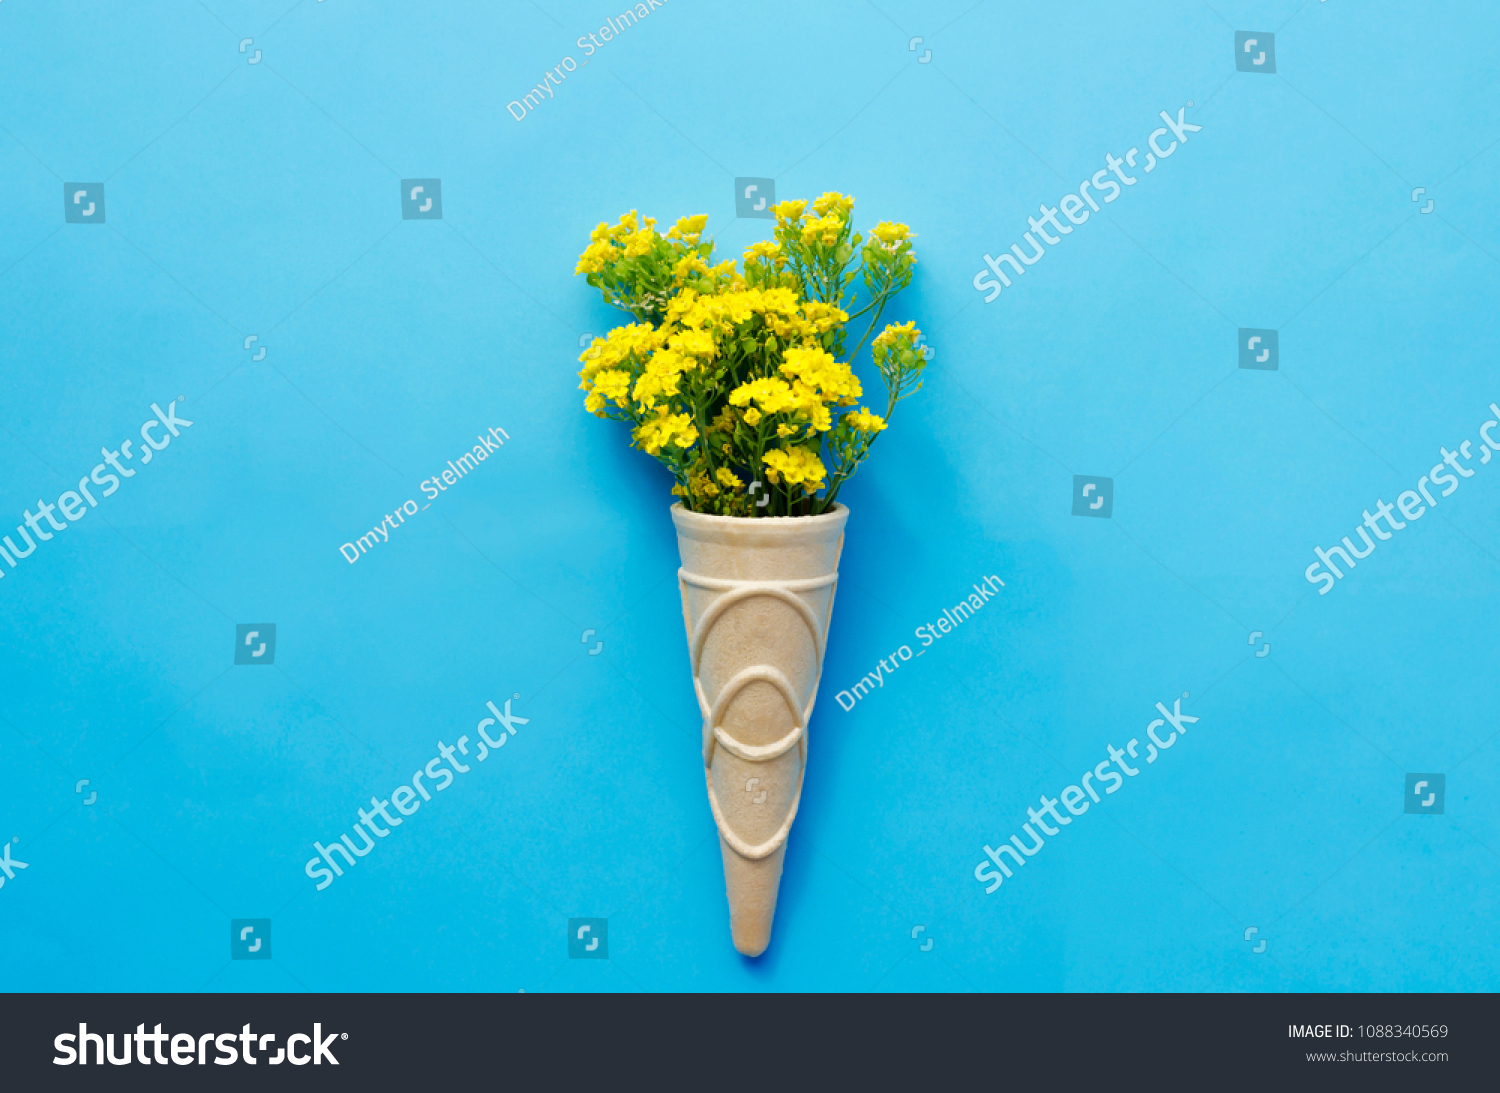 Bouquet Yellow Flowers Containers Ice Cream Stock Photo Royalty